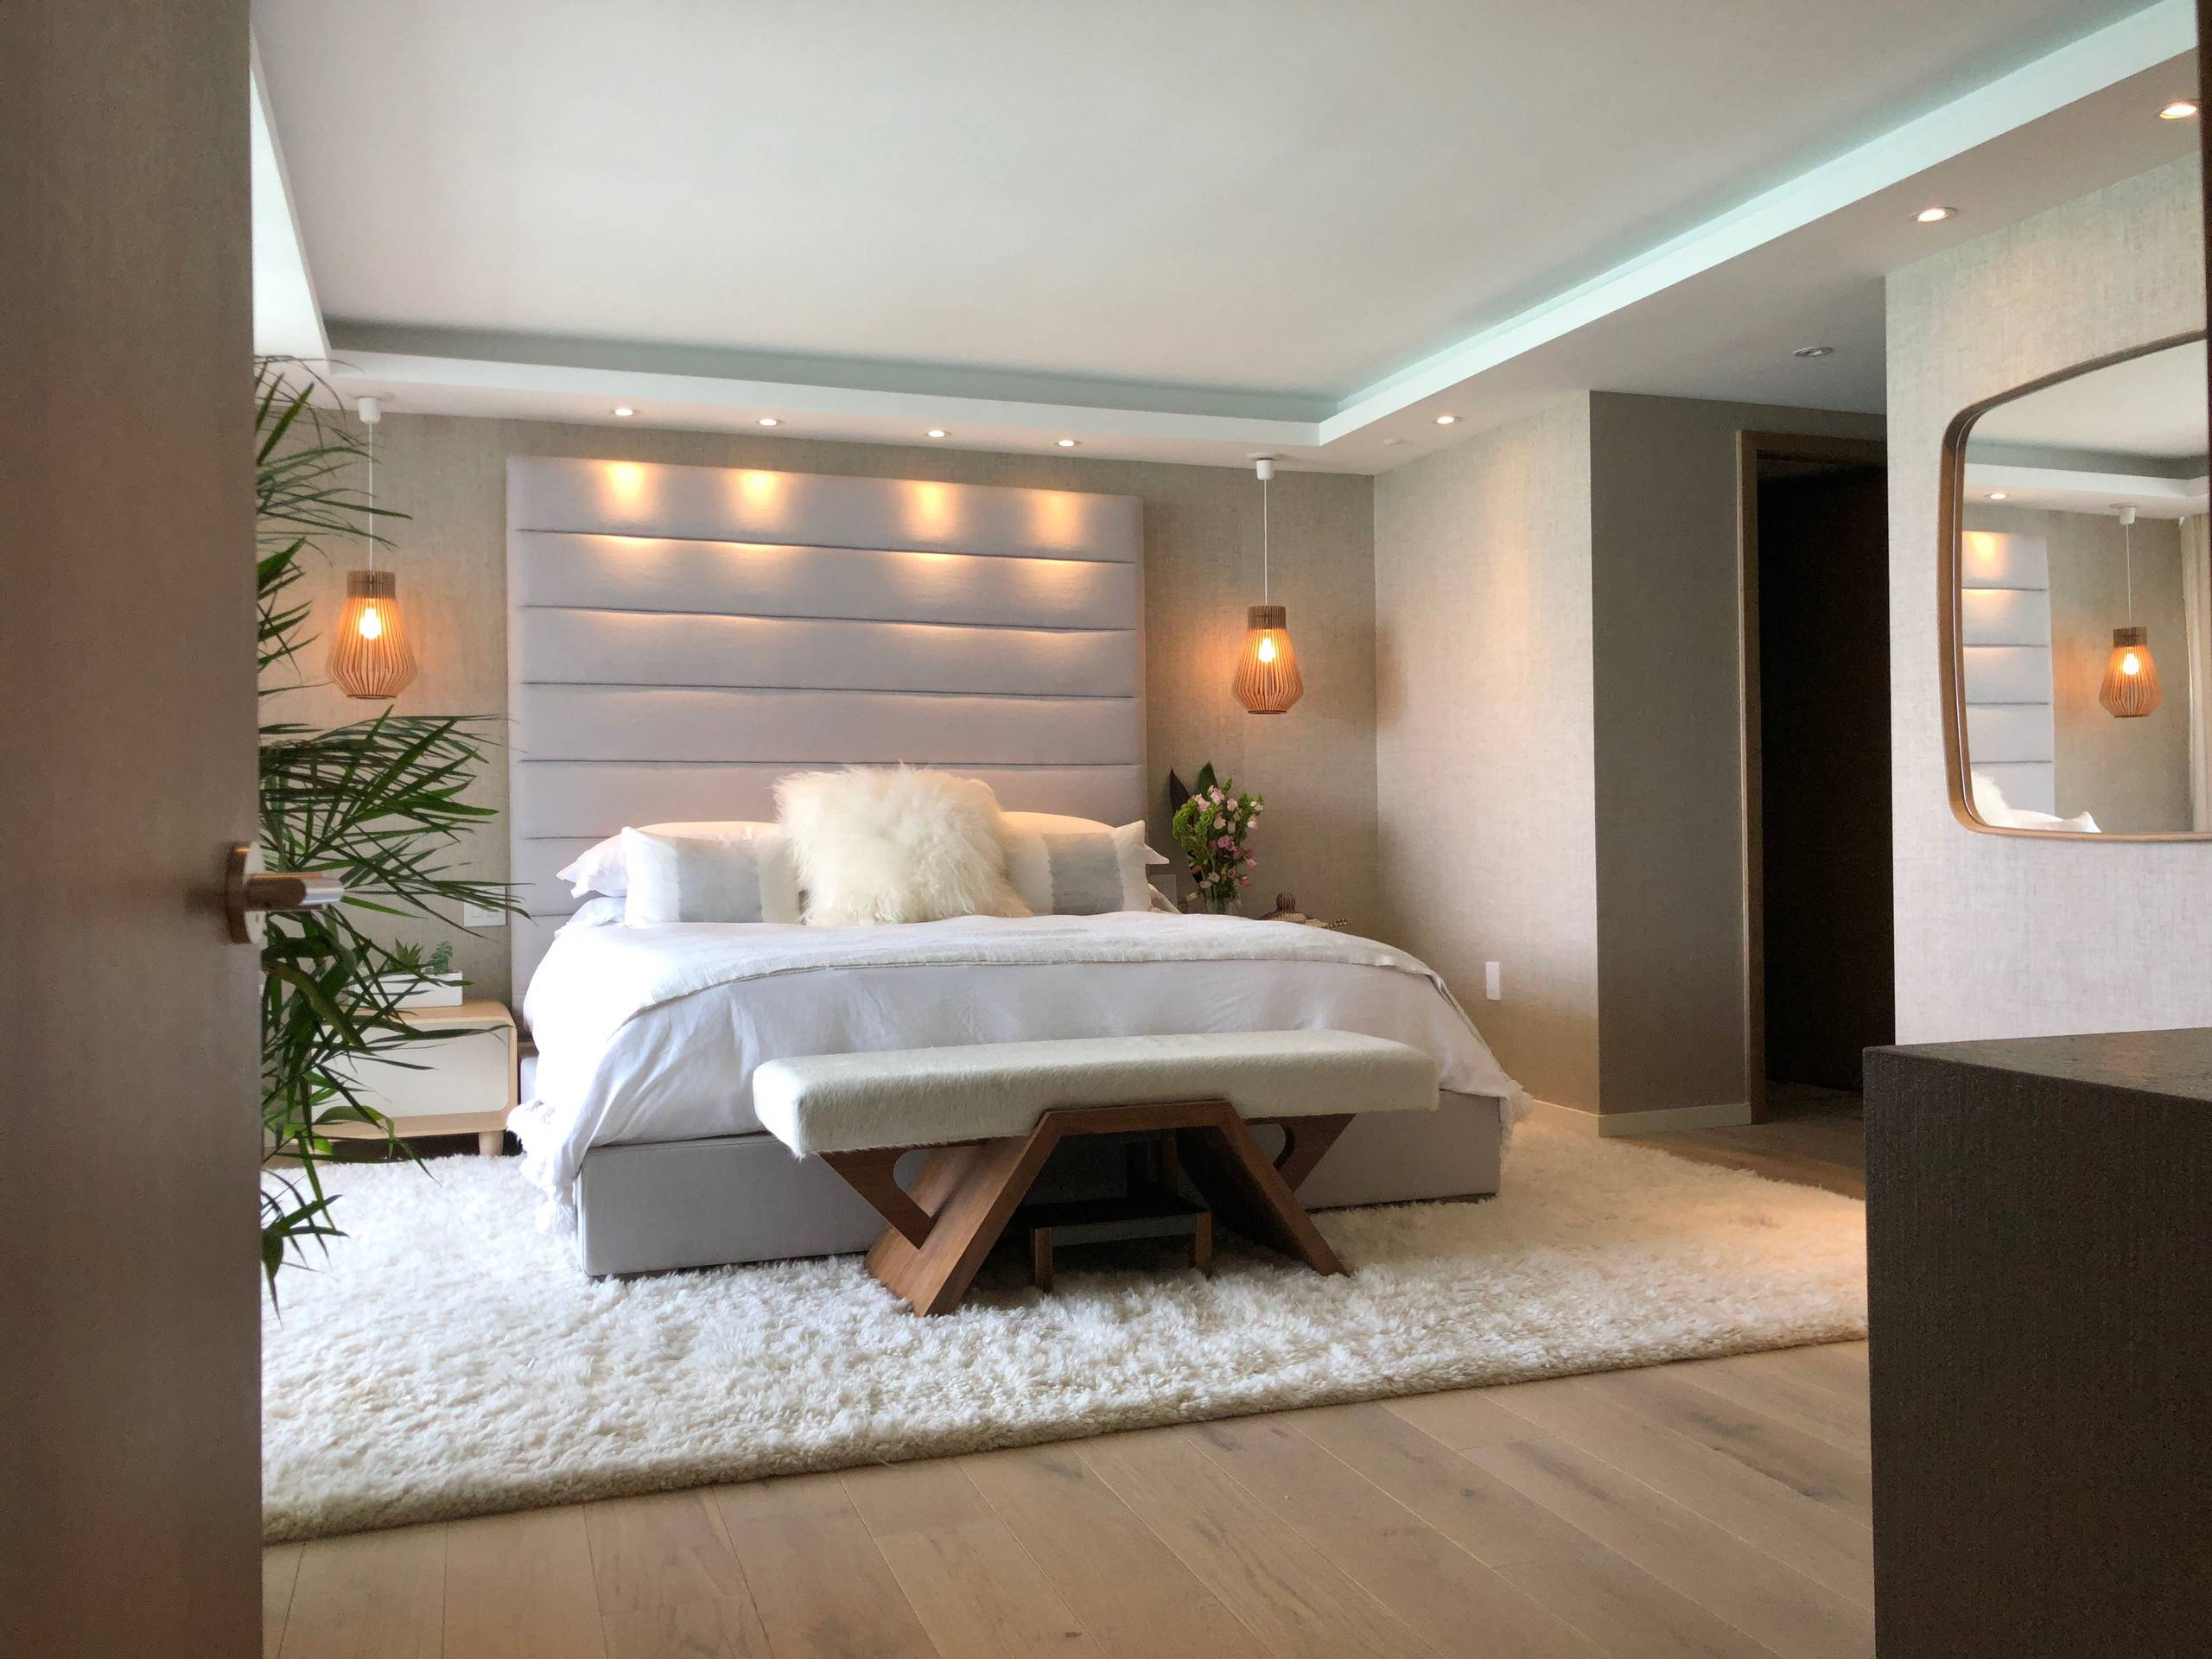 8 Beautiful Modern Bedroom Pictures & Ideas - December, 8  Houzz